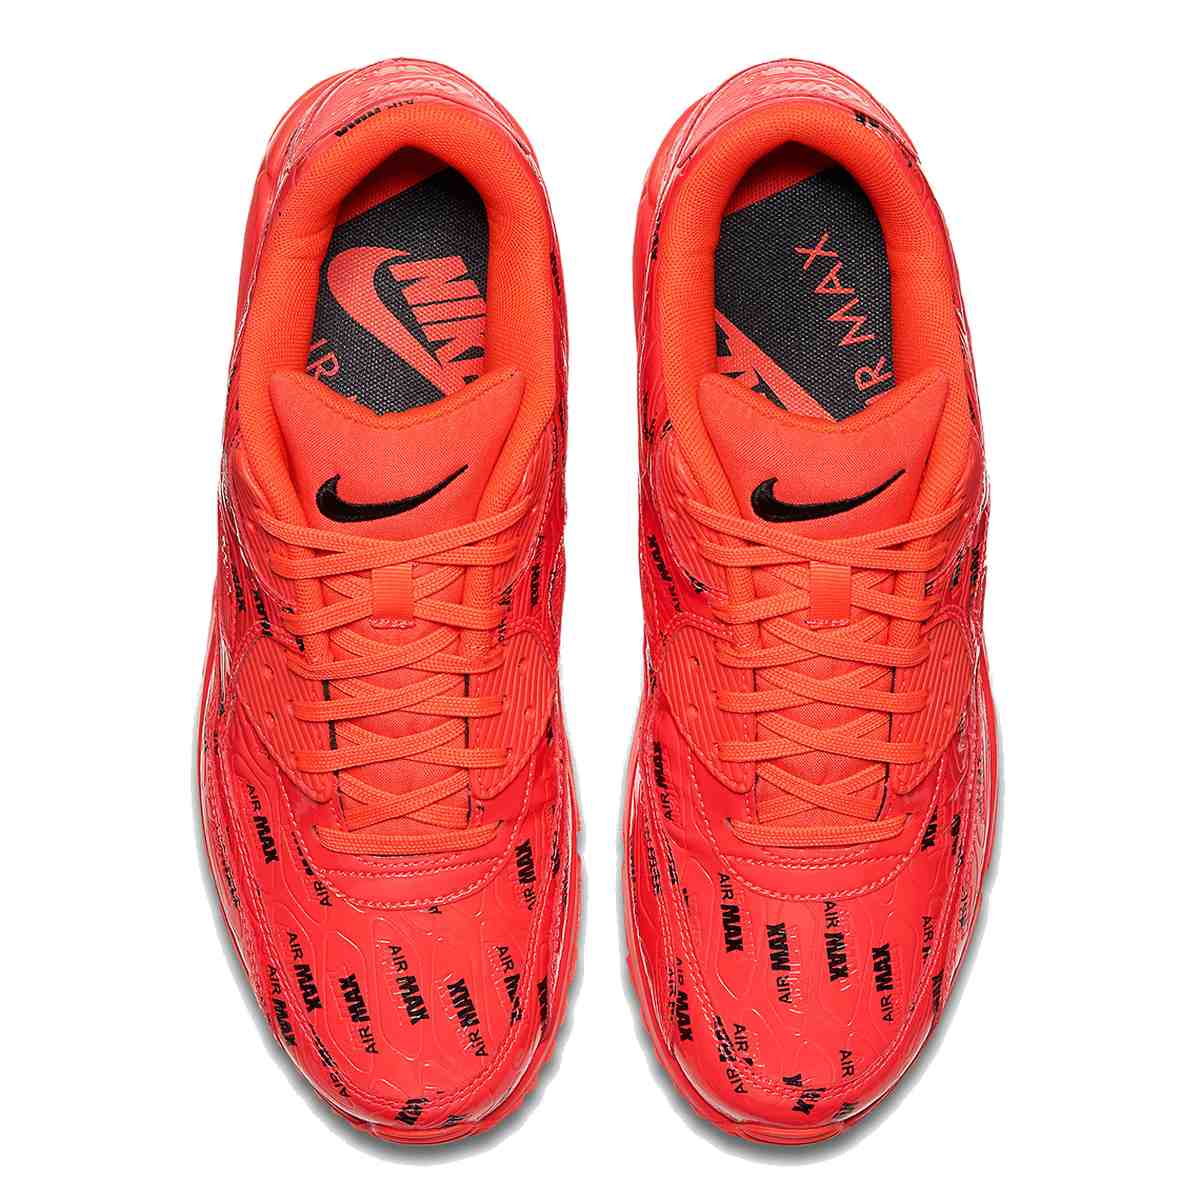 competitive price 15851 3a946 ... Nike Air Max 90 Premium Air Max Pack 700155-604 ...